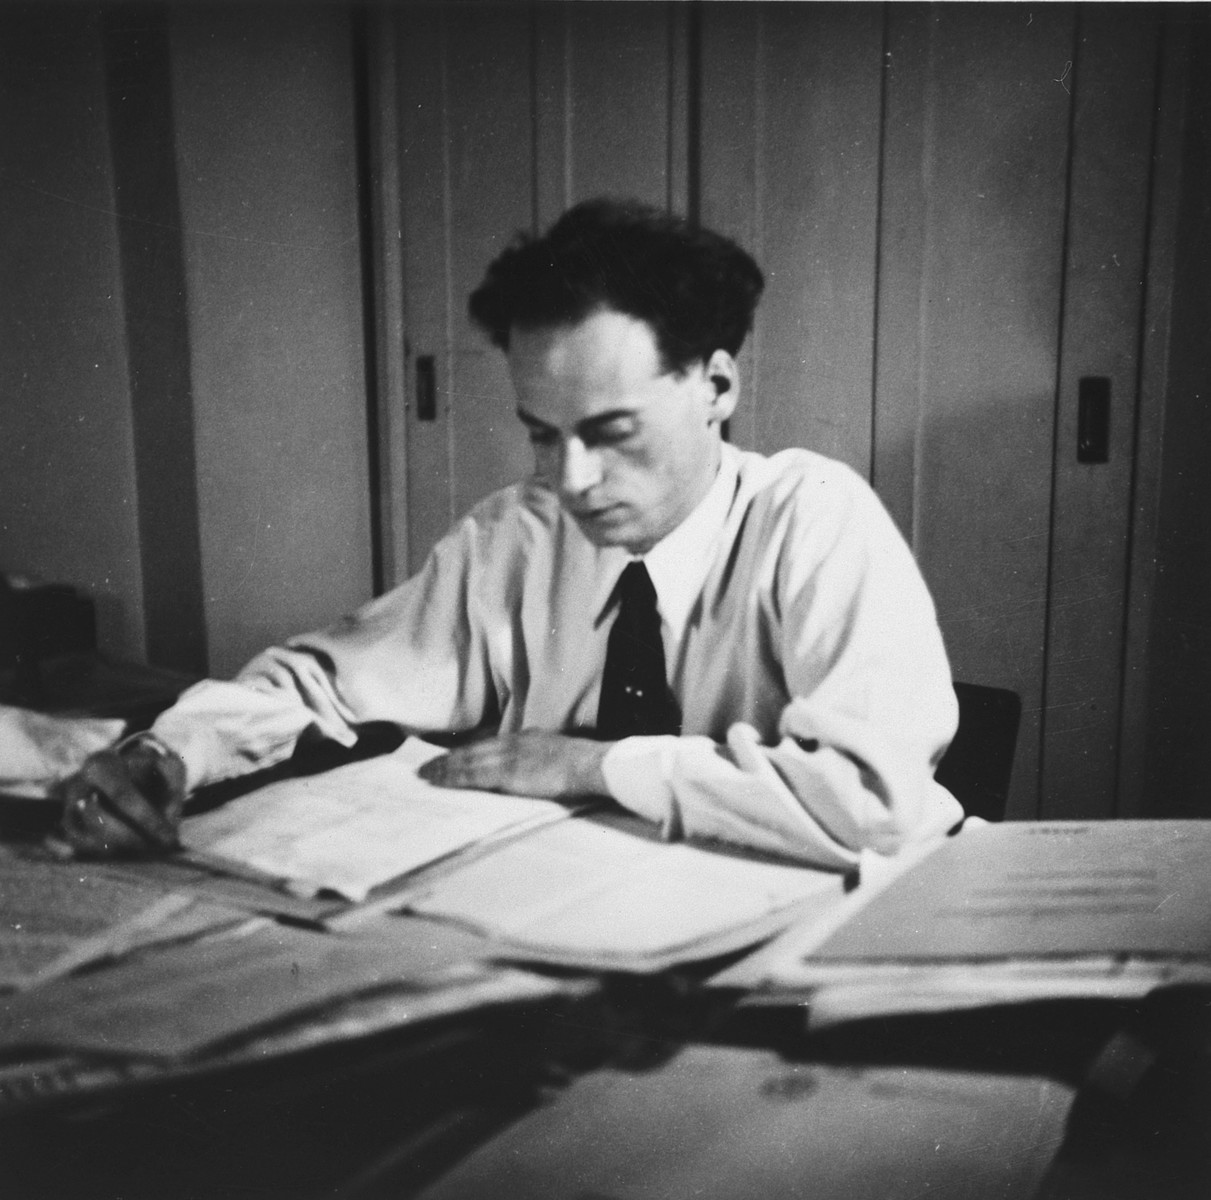 A young Hungarian-Jewish man reads documents at his desk.   Pictured is Denes Simonyi.